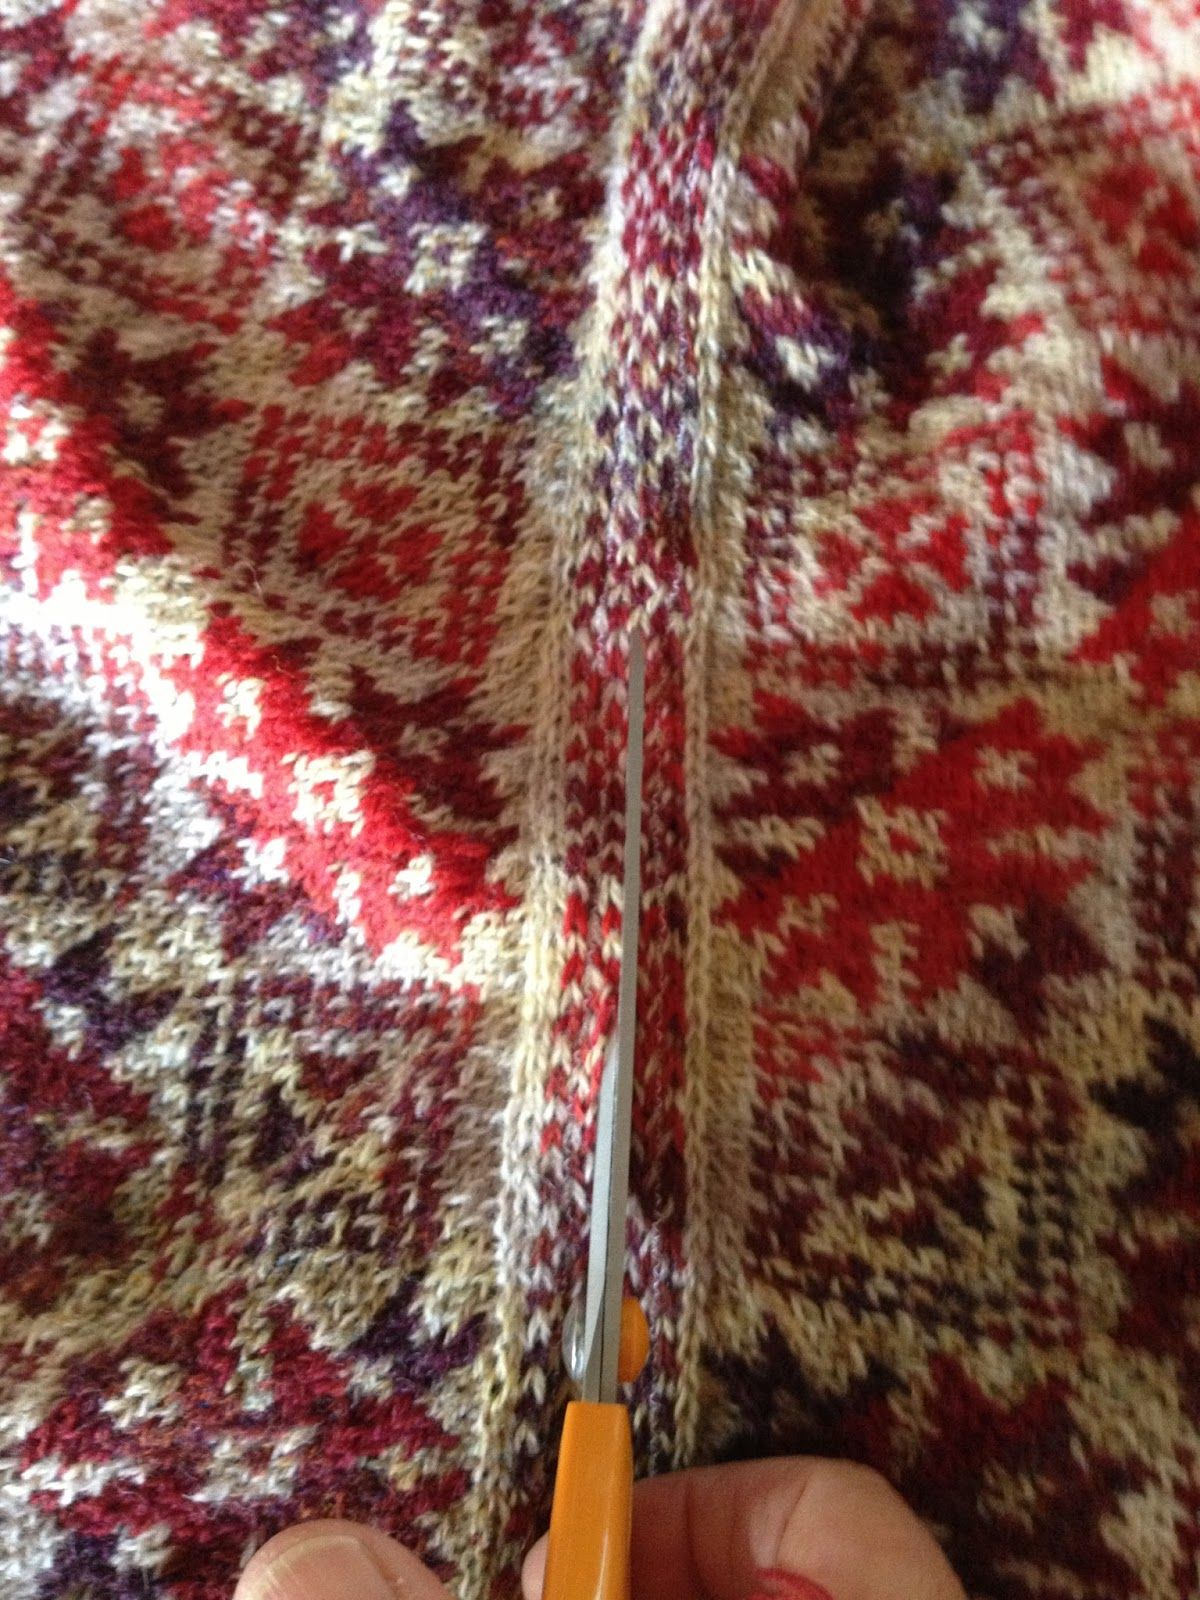 Madam Munch: Borten på et mønstersjal. How to knit the side borders on astranded knitted shawl